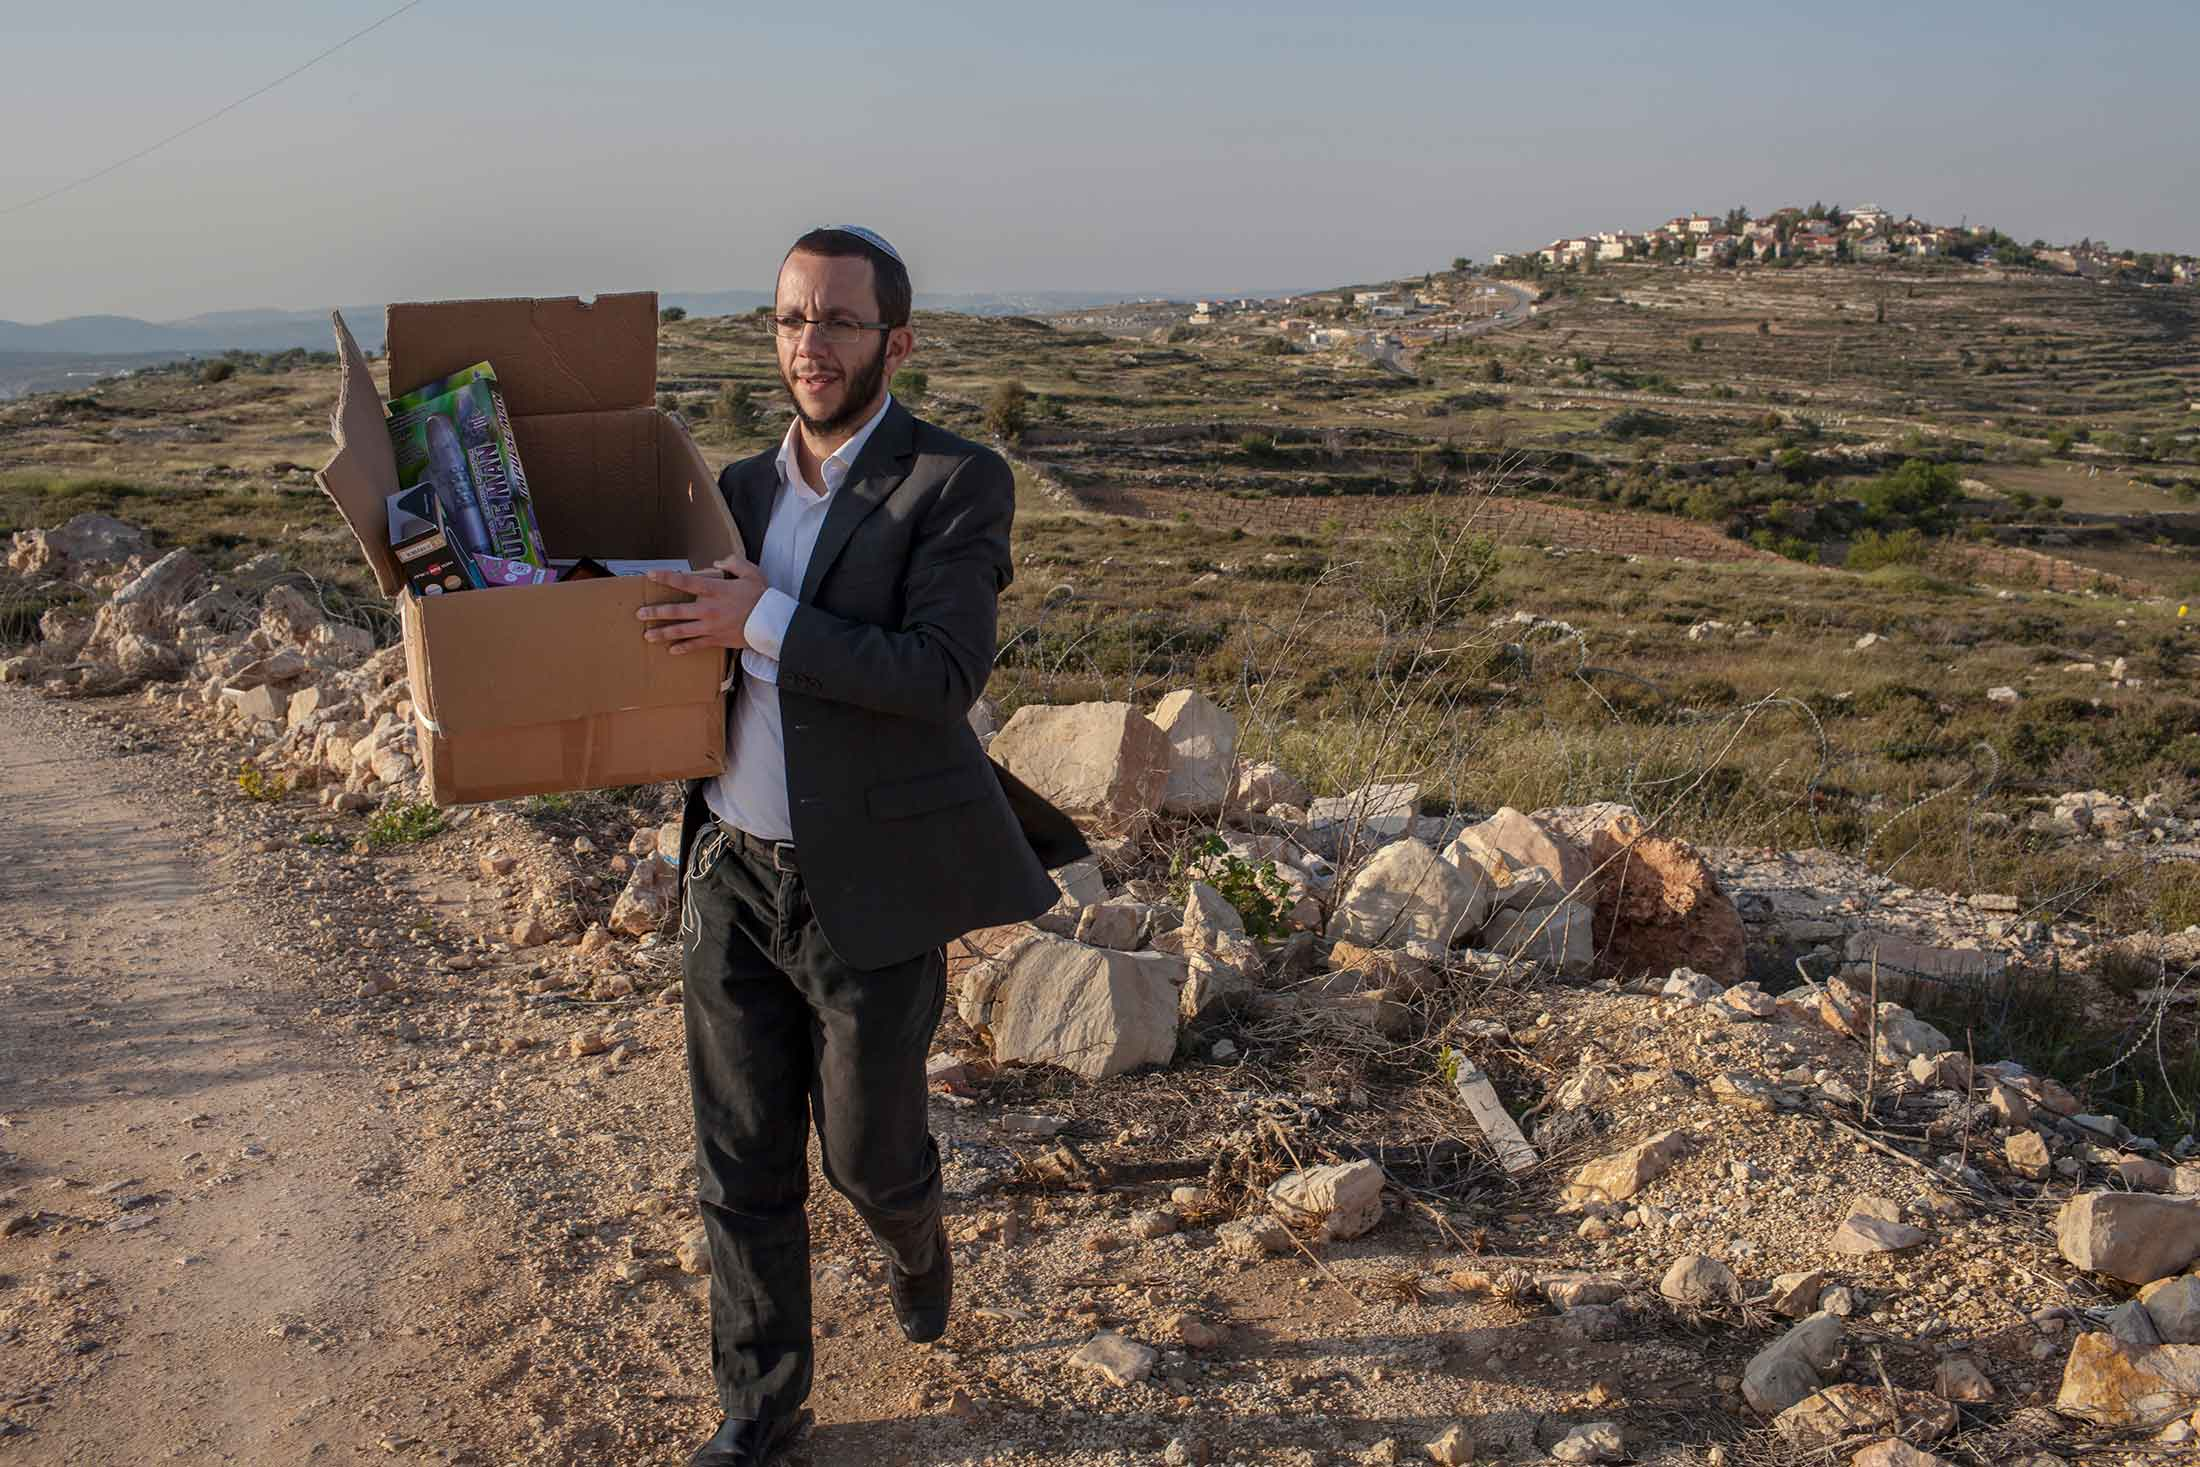 Rabbi Natan Alexander carries a box containing kosher sex toys near his home in Elazar, a Jewish settlement in the West Bank. The rabbi is careful not to expose his small children to the products sold by his e-commerce business, Better2gether, which adheres to Orthodox religious rules by banning nudity, sexy clothing, or any other suggestive imagery.